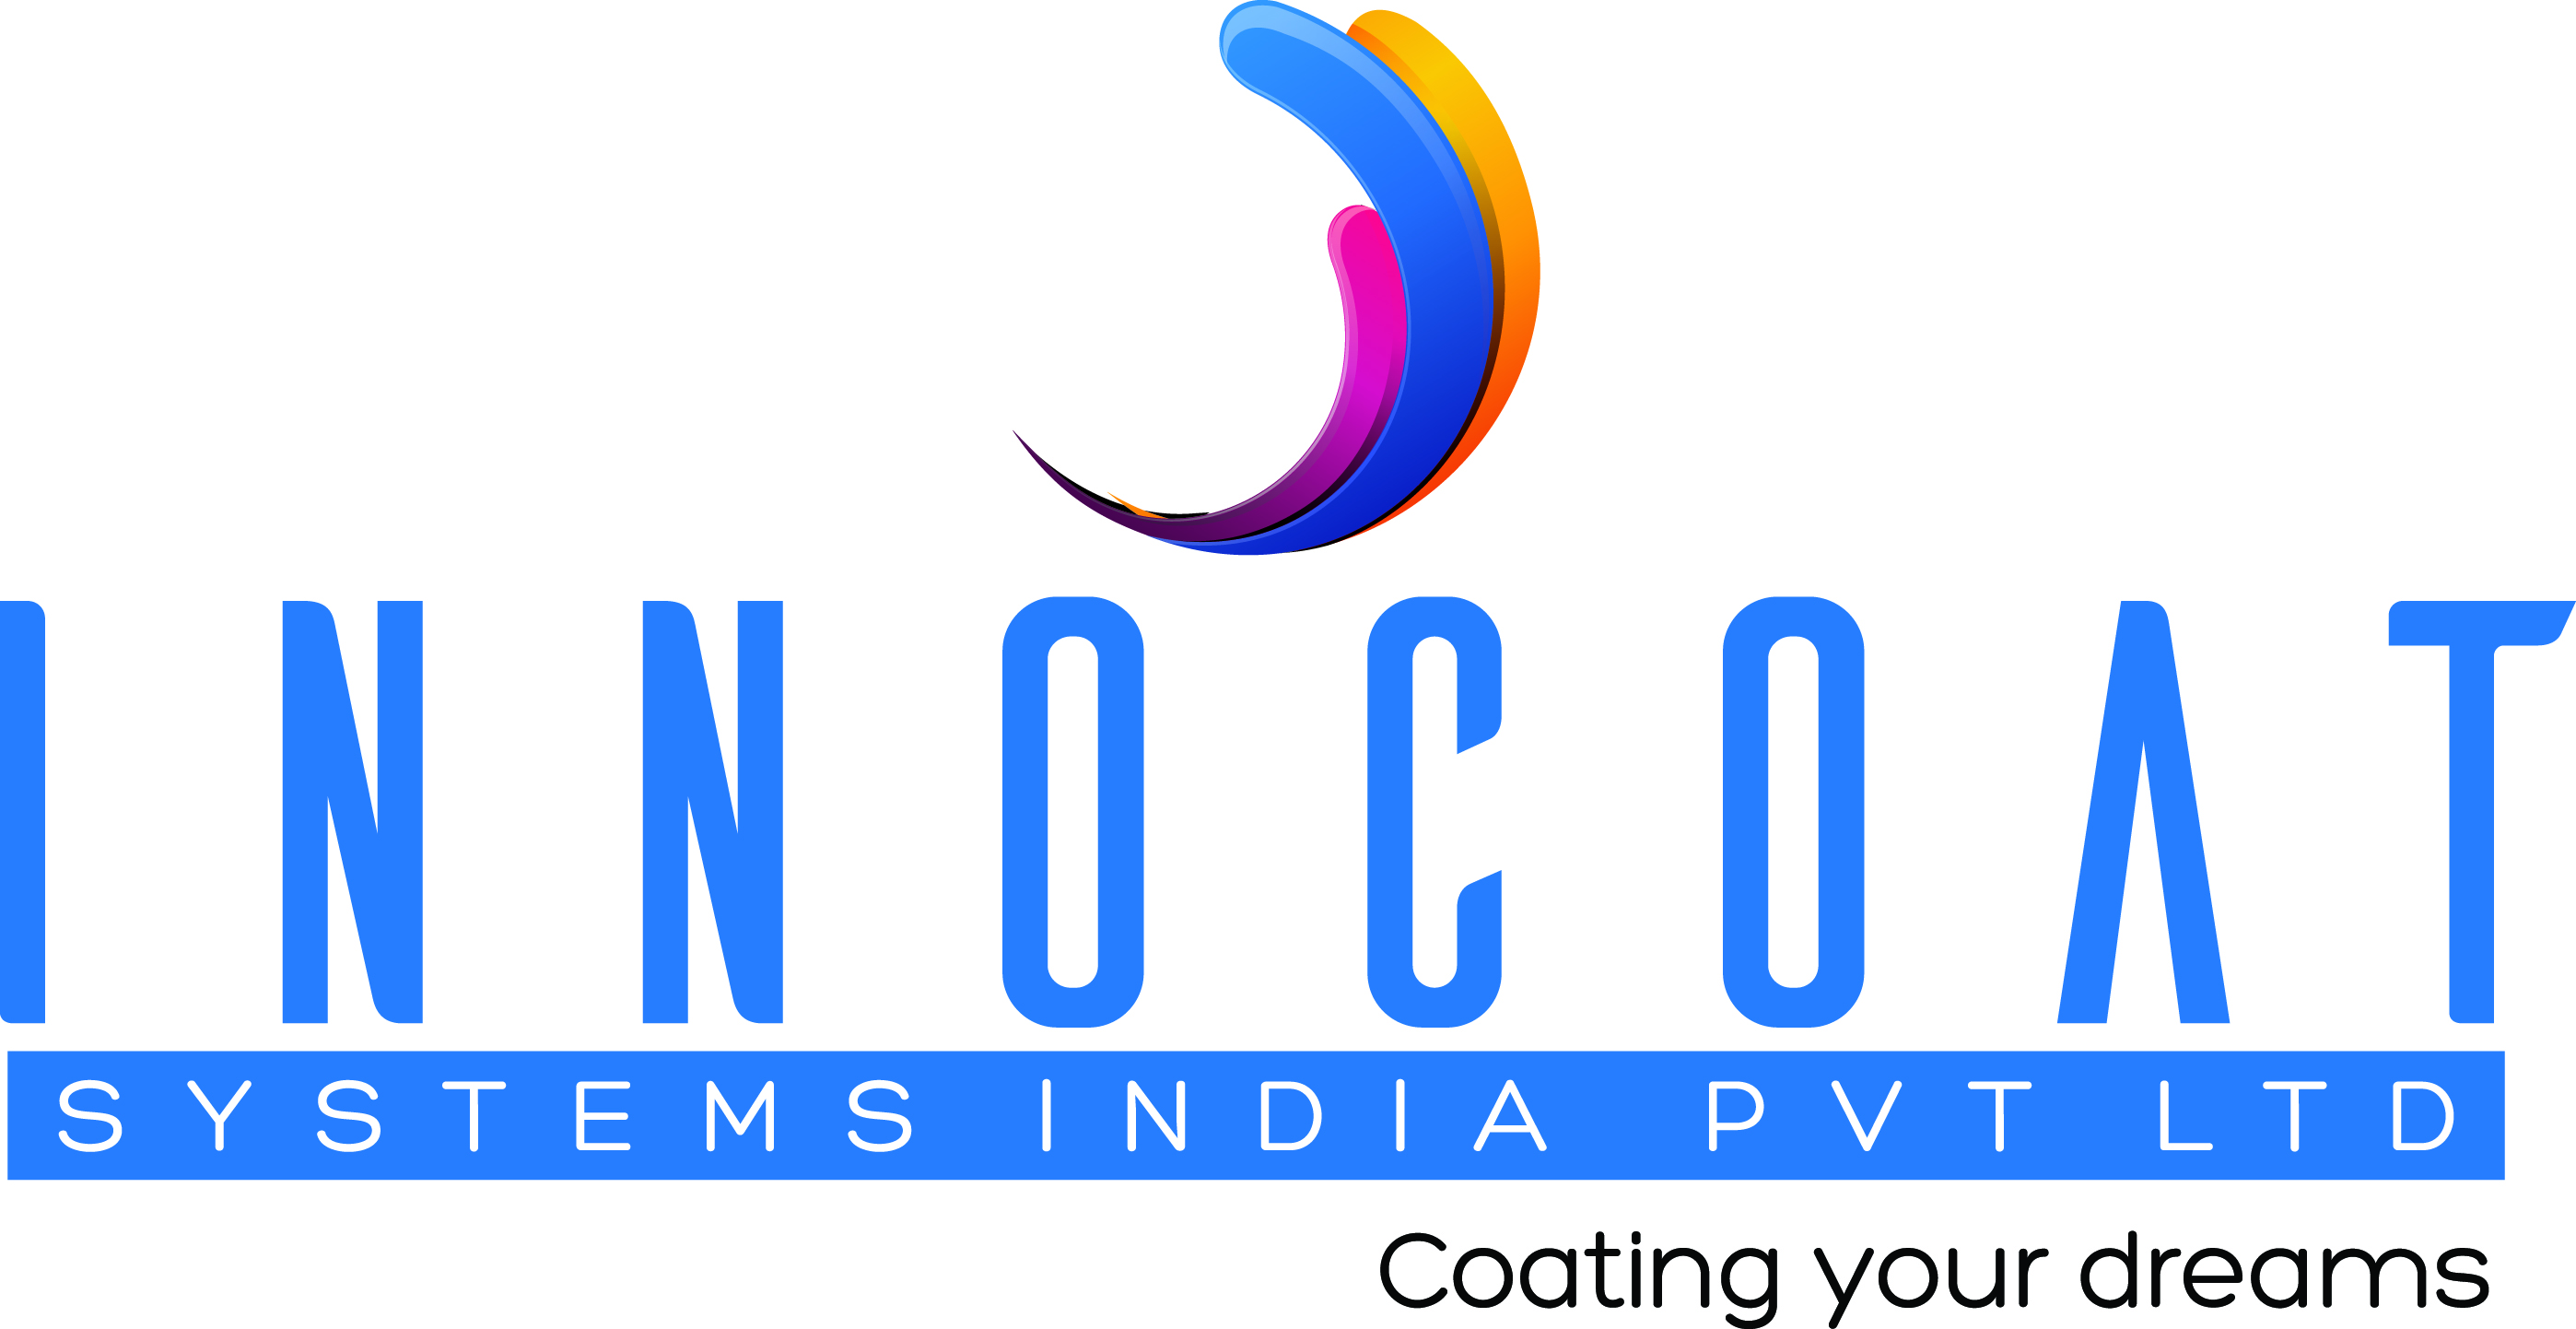 Innocoat Systems